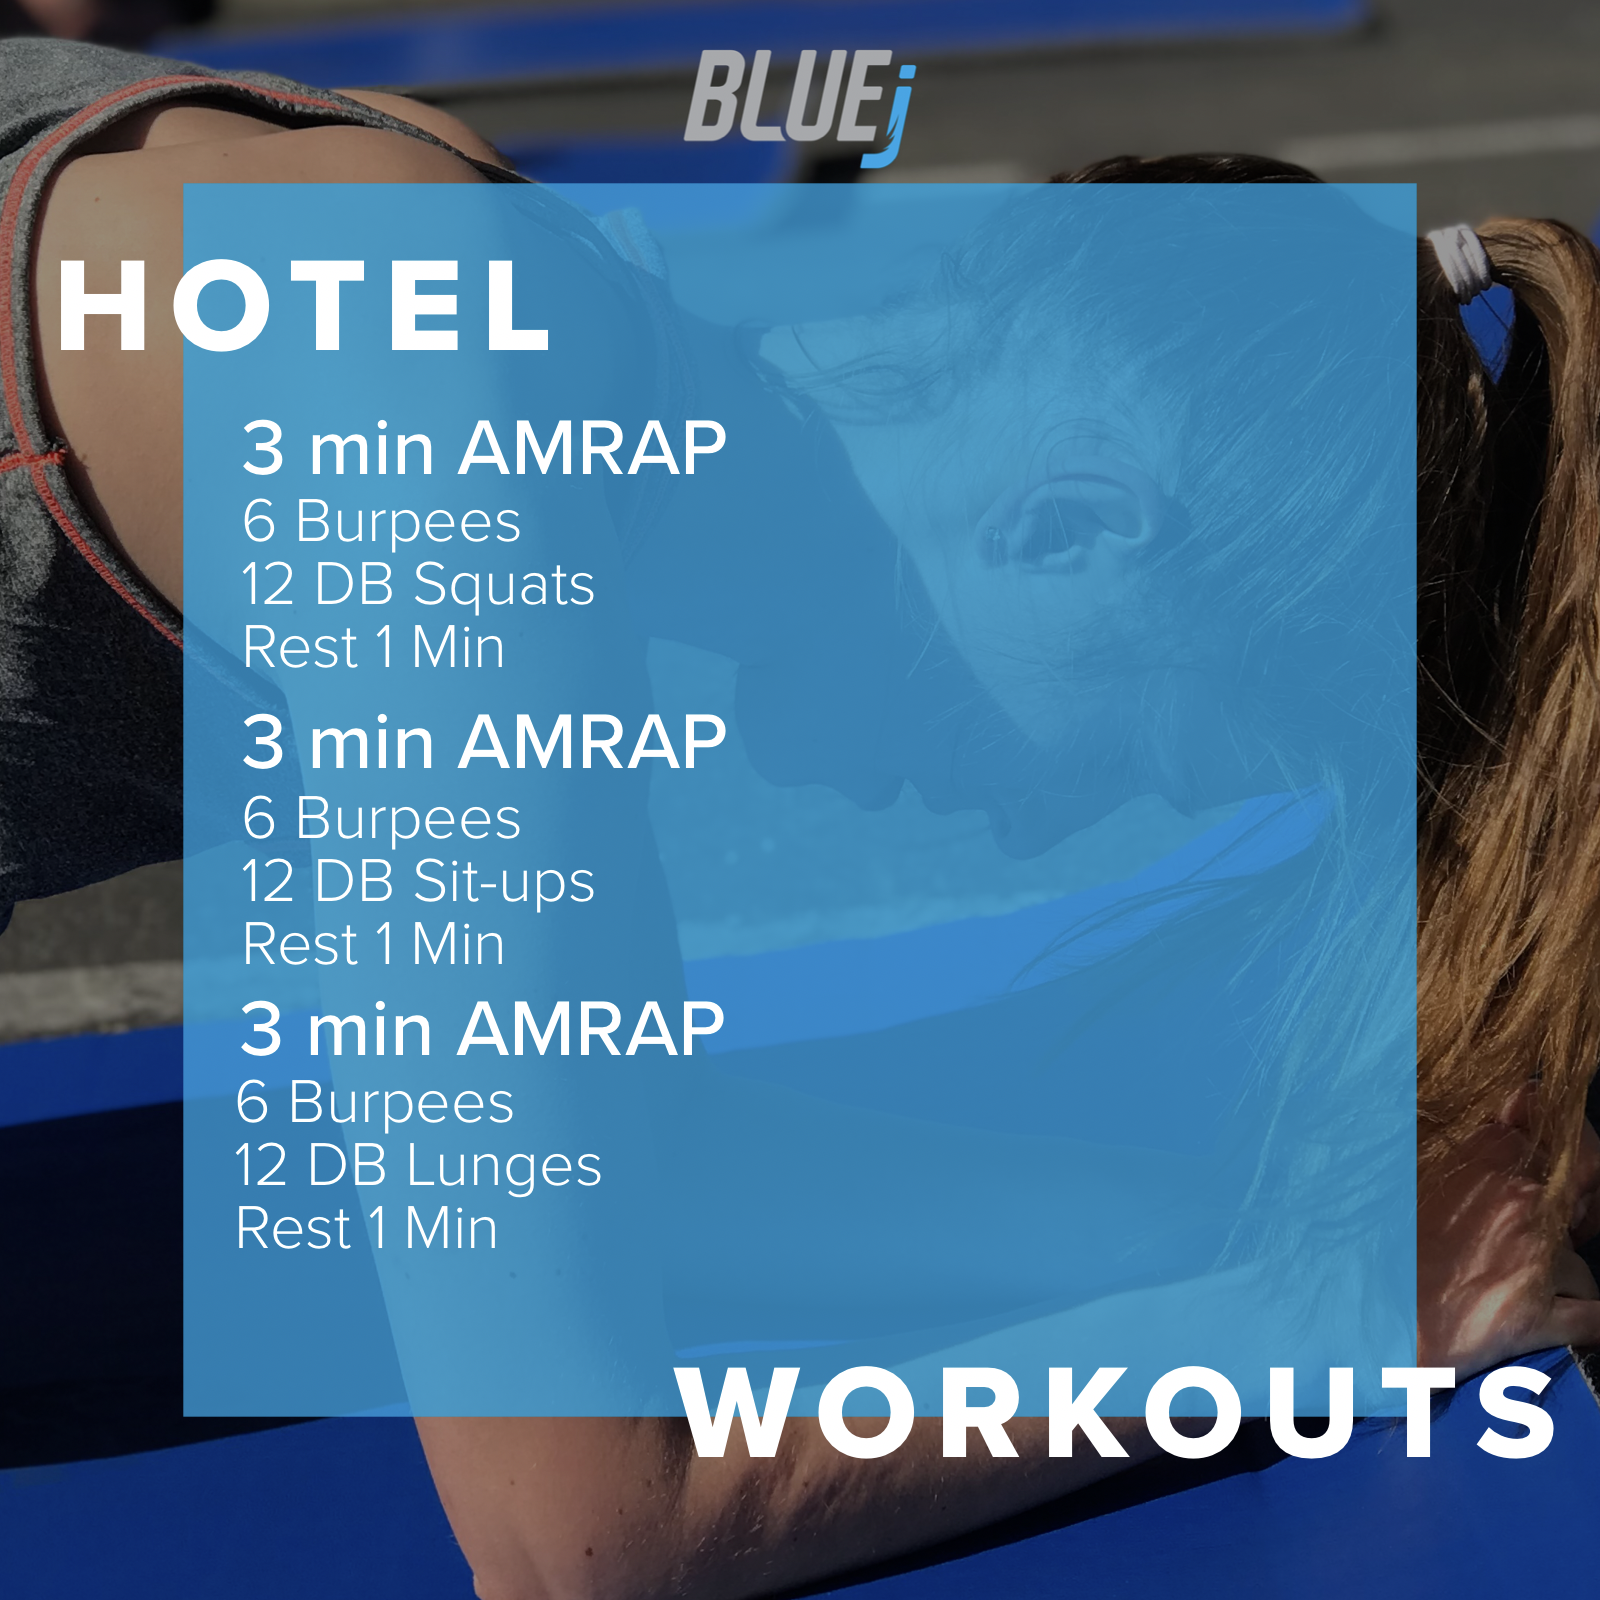 hotel workouts 7:13.PNG